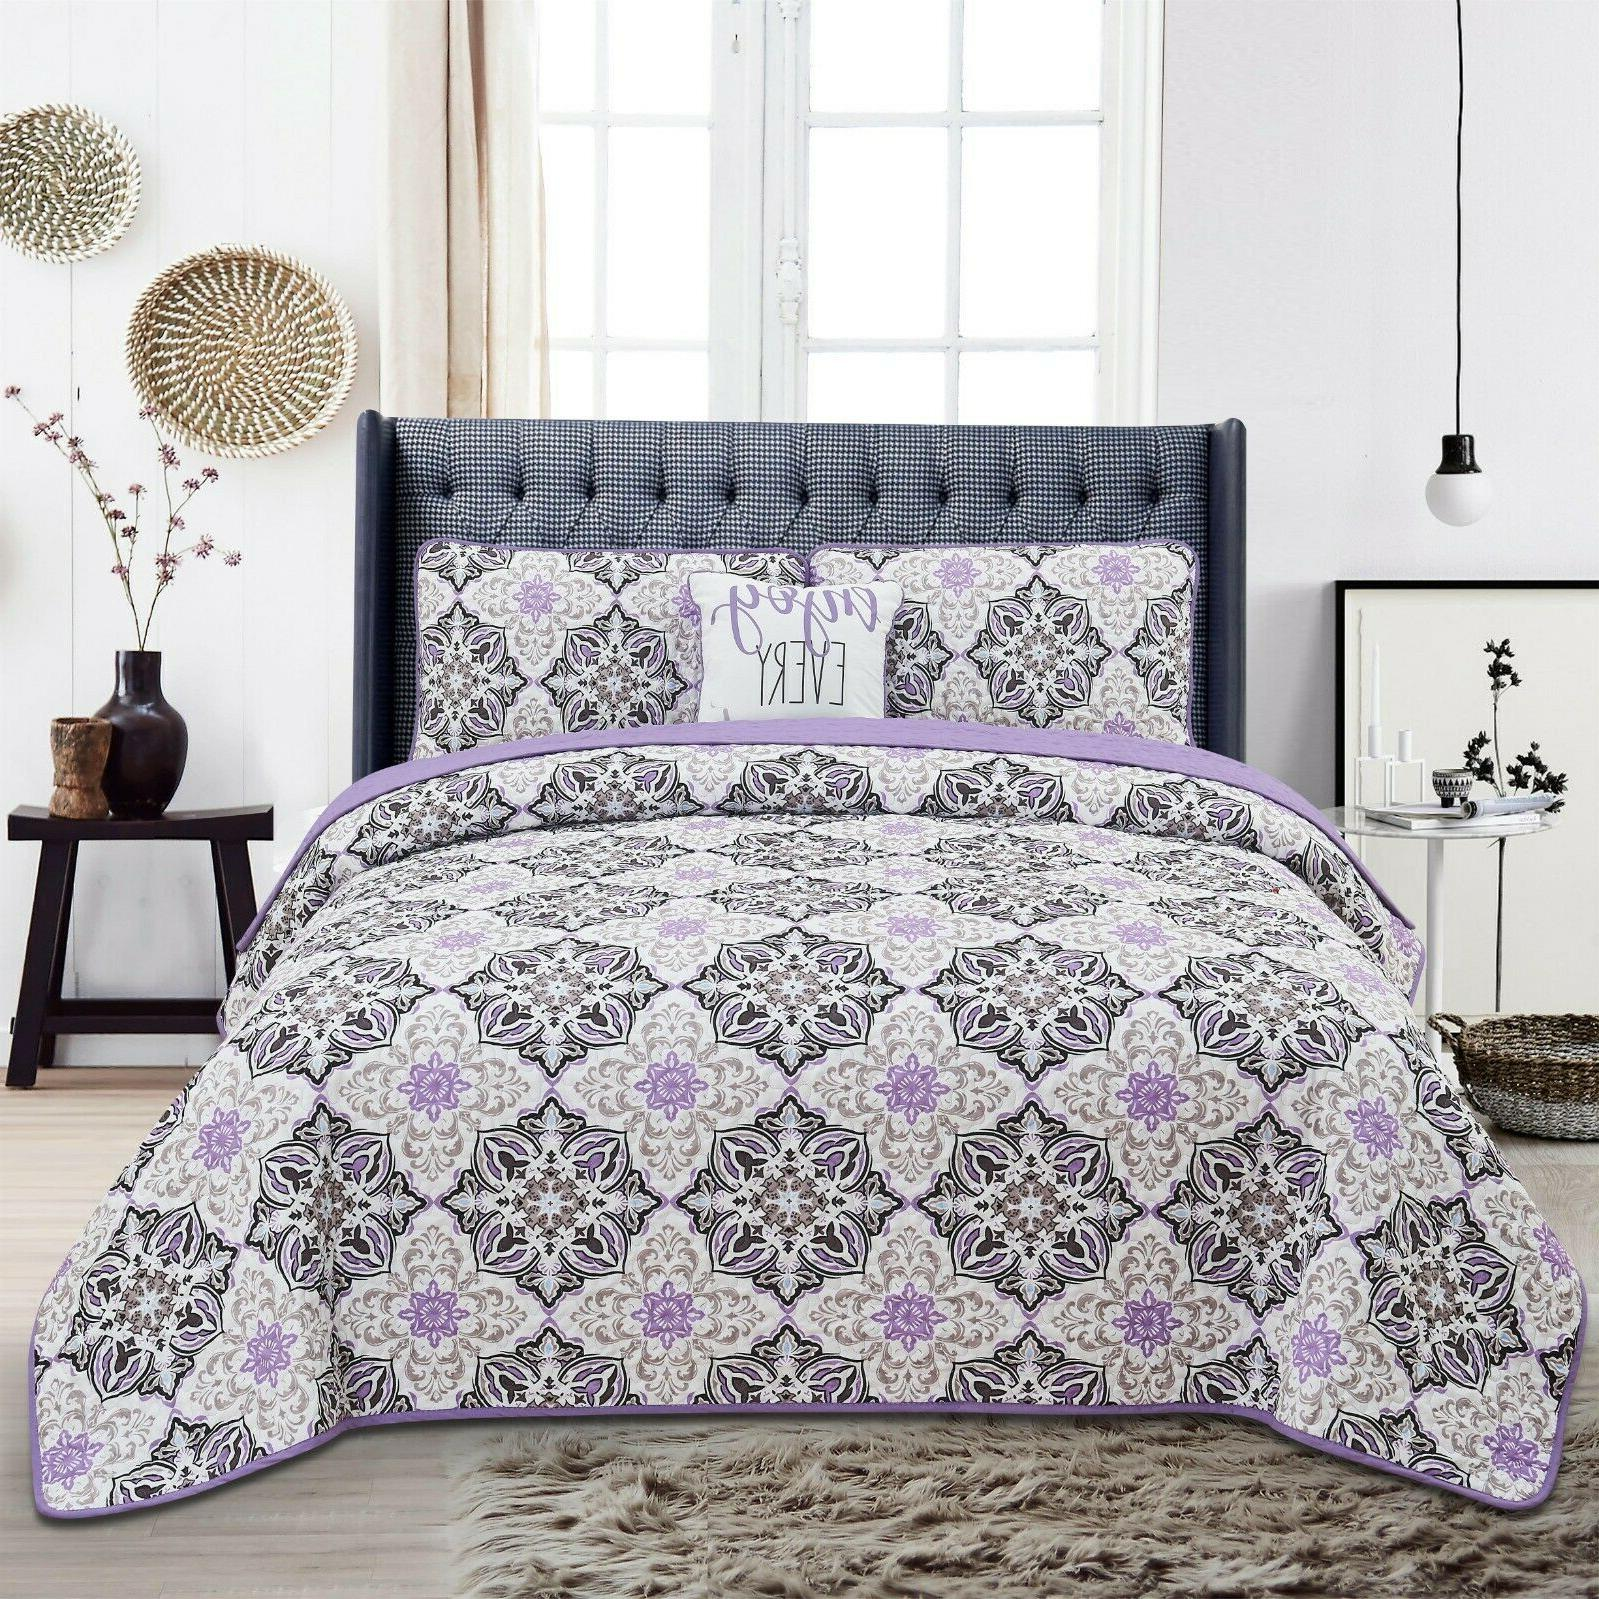 Quilt Sets 4 Piece Down Alternative Bedding Set with Shams a